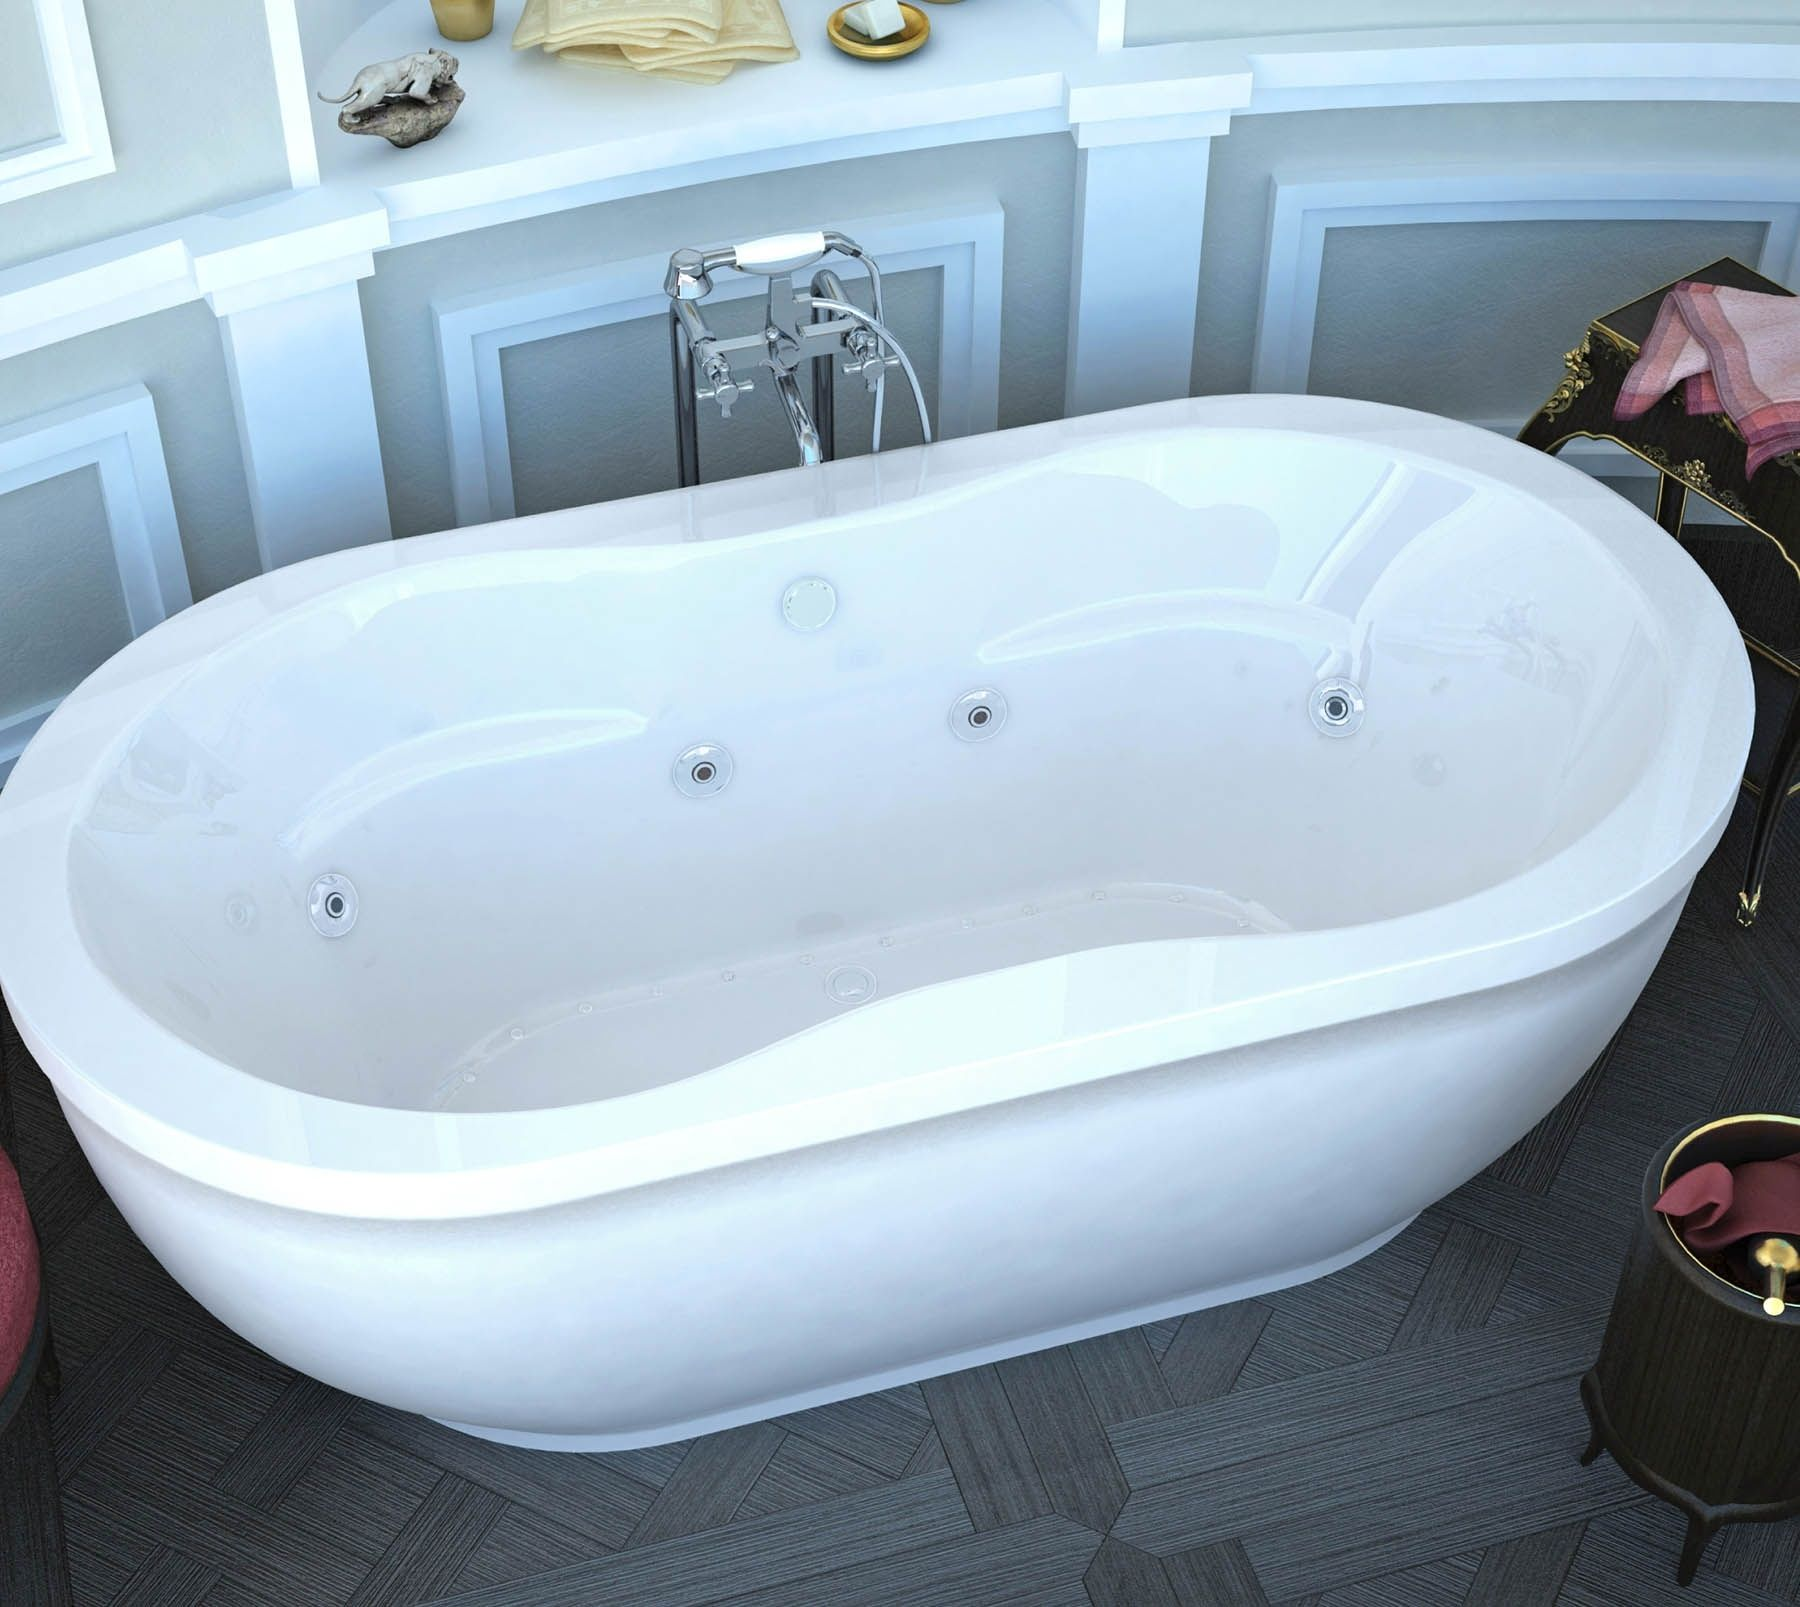 Free Standing Tub With Jets Freestanding Bathtubs With Whirlpool ...